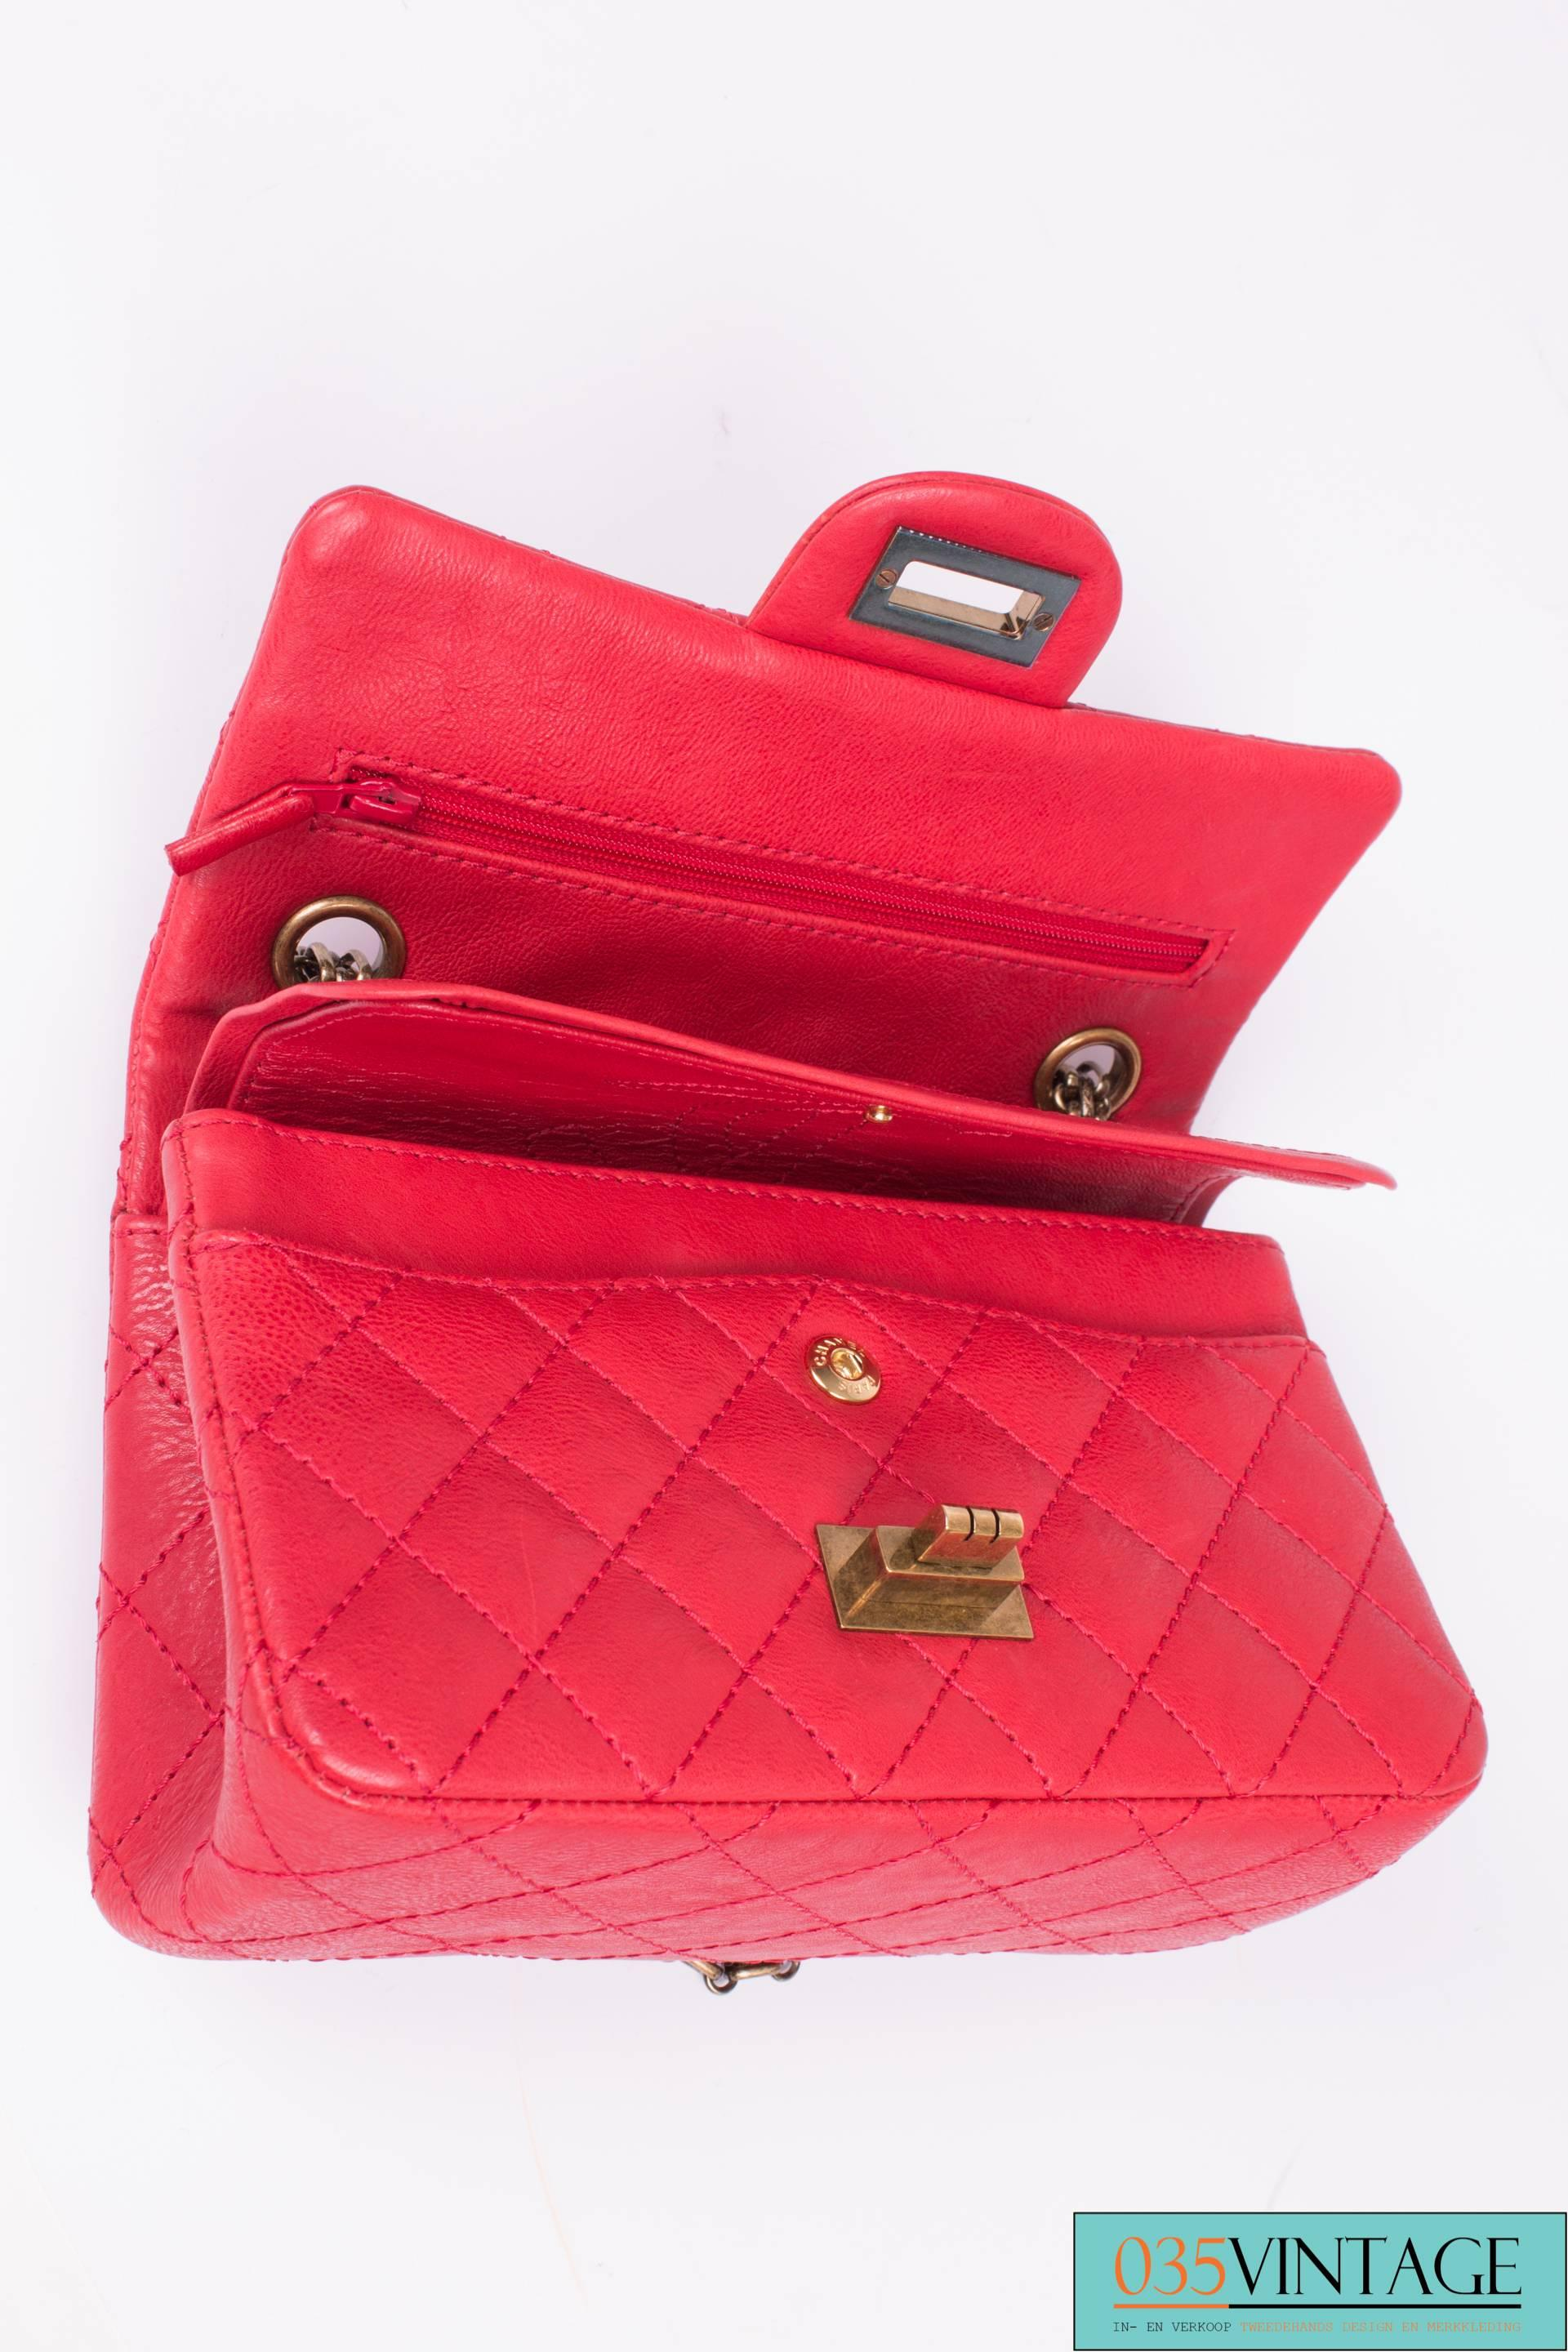 c0e6c2008054 Chanel 2.55 Reissue Classic Mini Double Flap Bag Mademoiselle Lock - red at  1stdibs